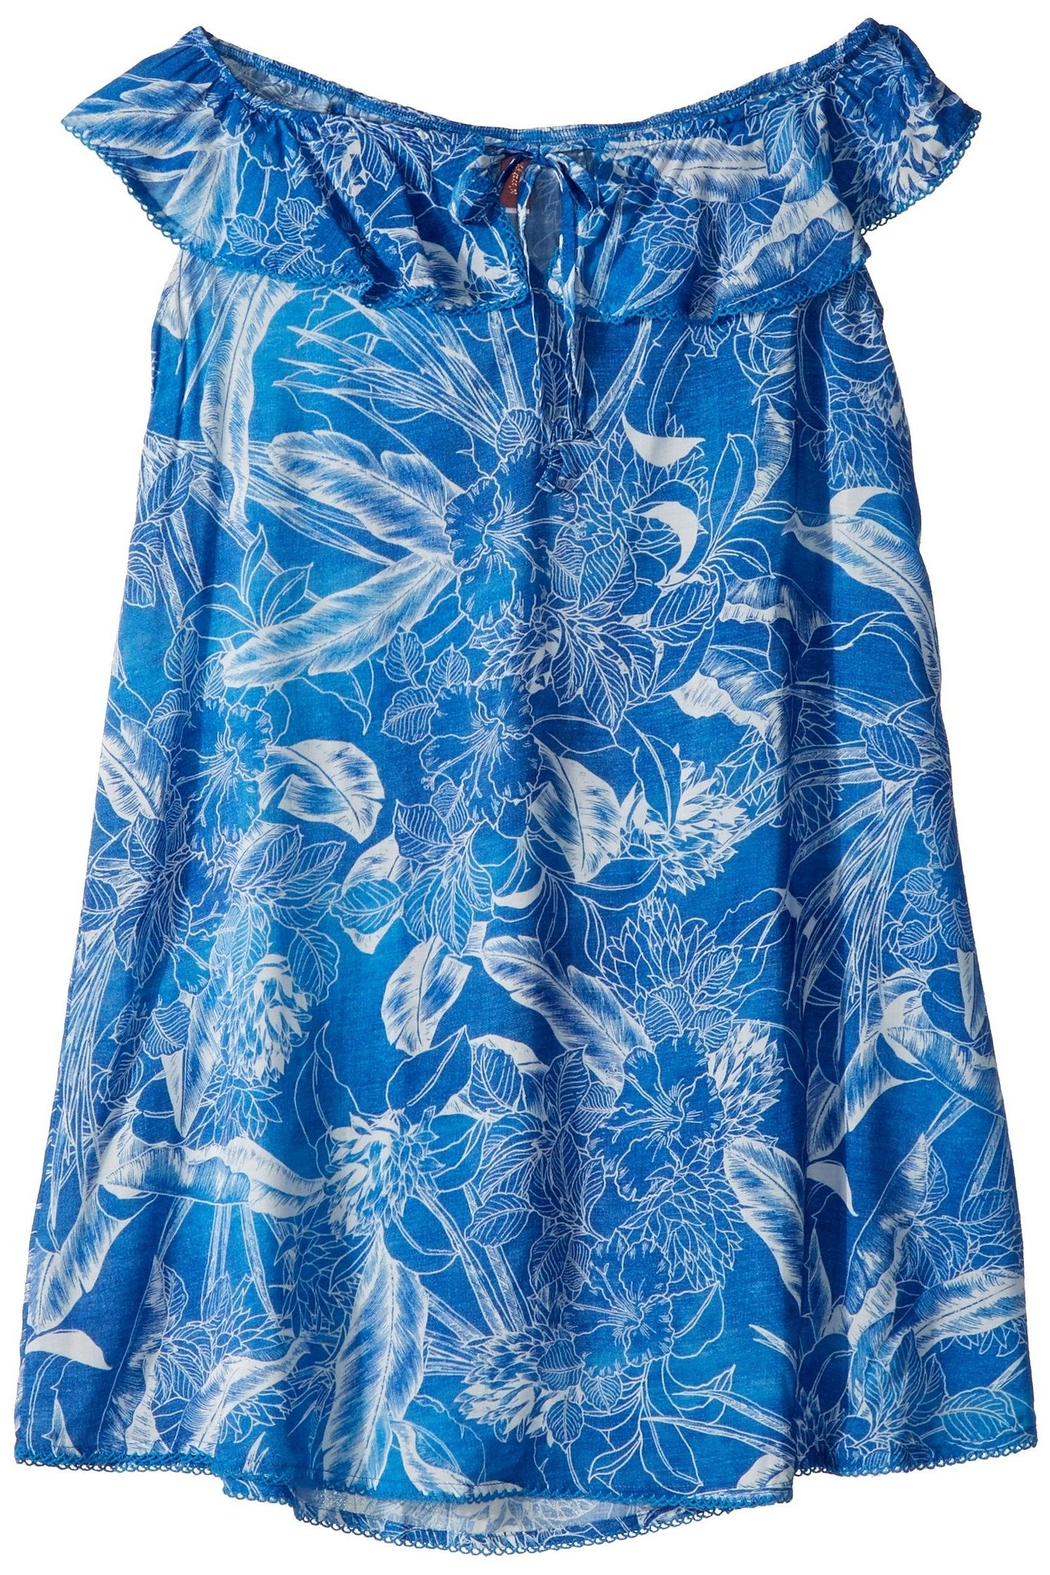 Maaji Swimwear Bluecat Fish Dress - Front Full Image